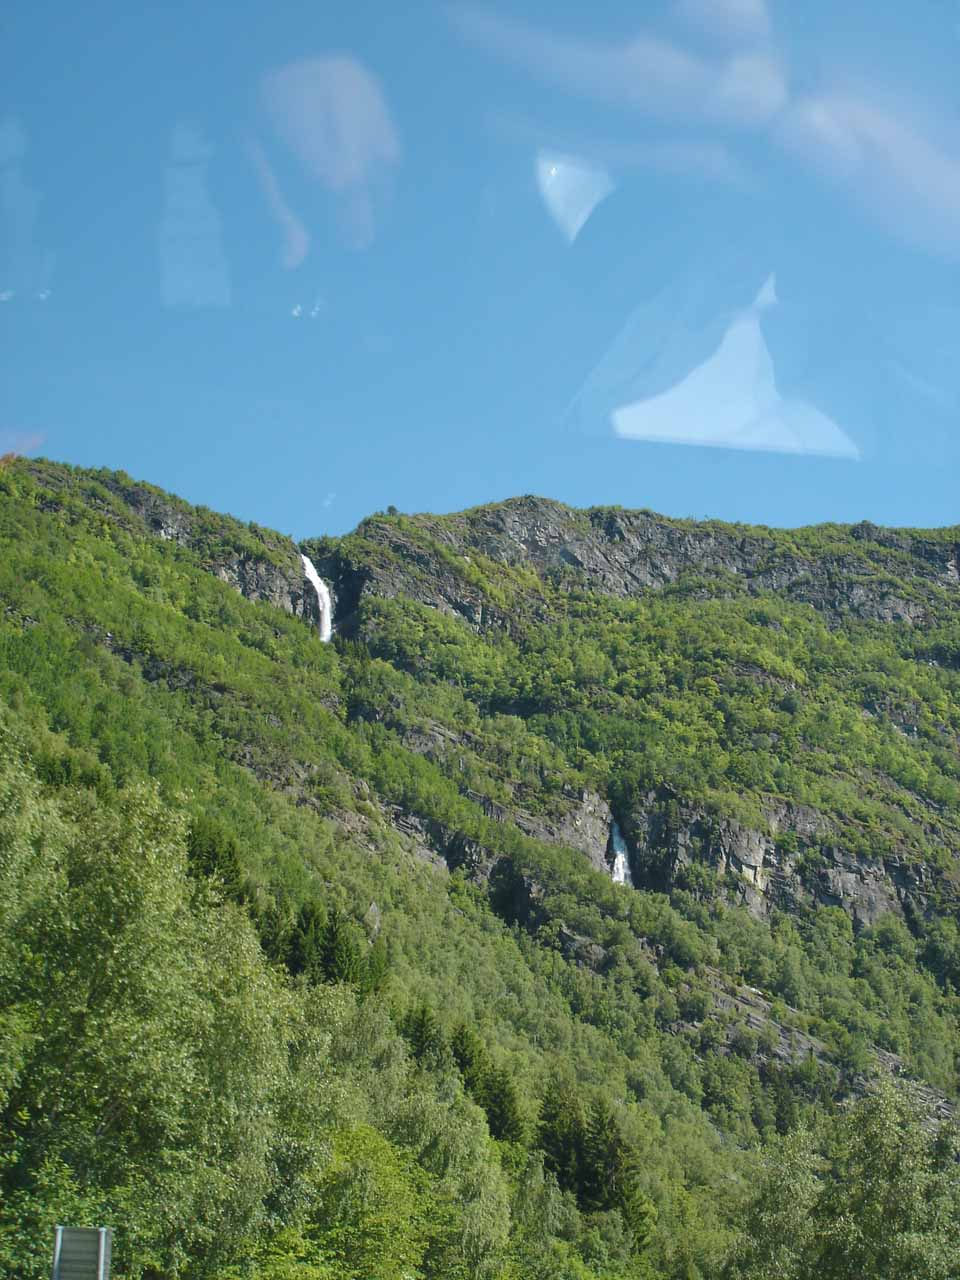 Julie spotted this obscure waterfall as we left Kvinnafossen and headed back east towards Sogndalsfjøra